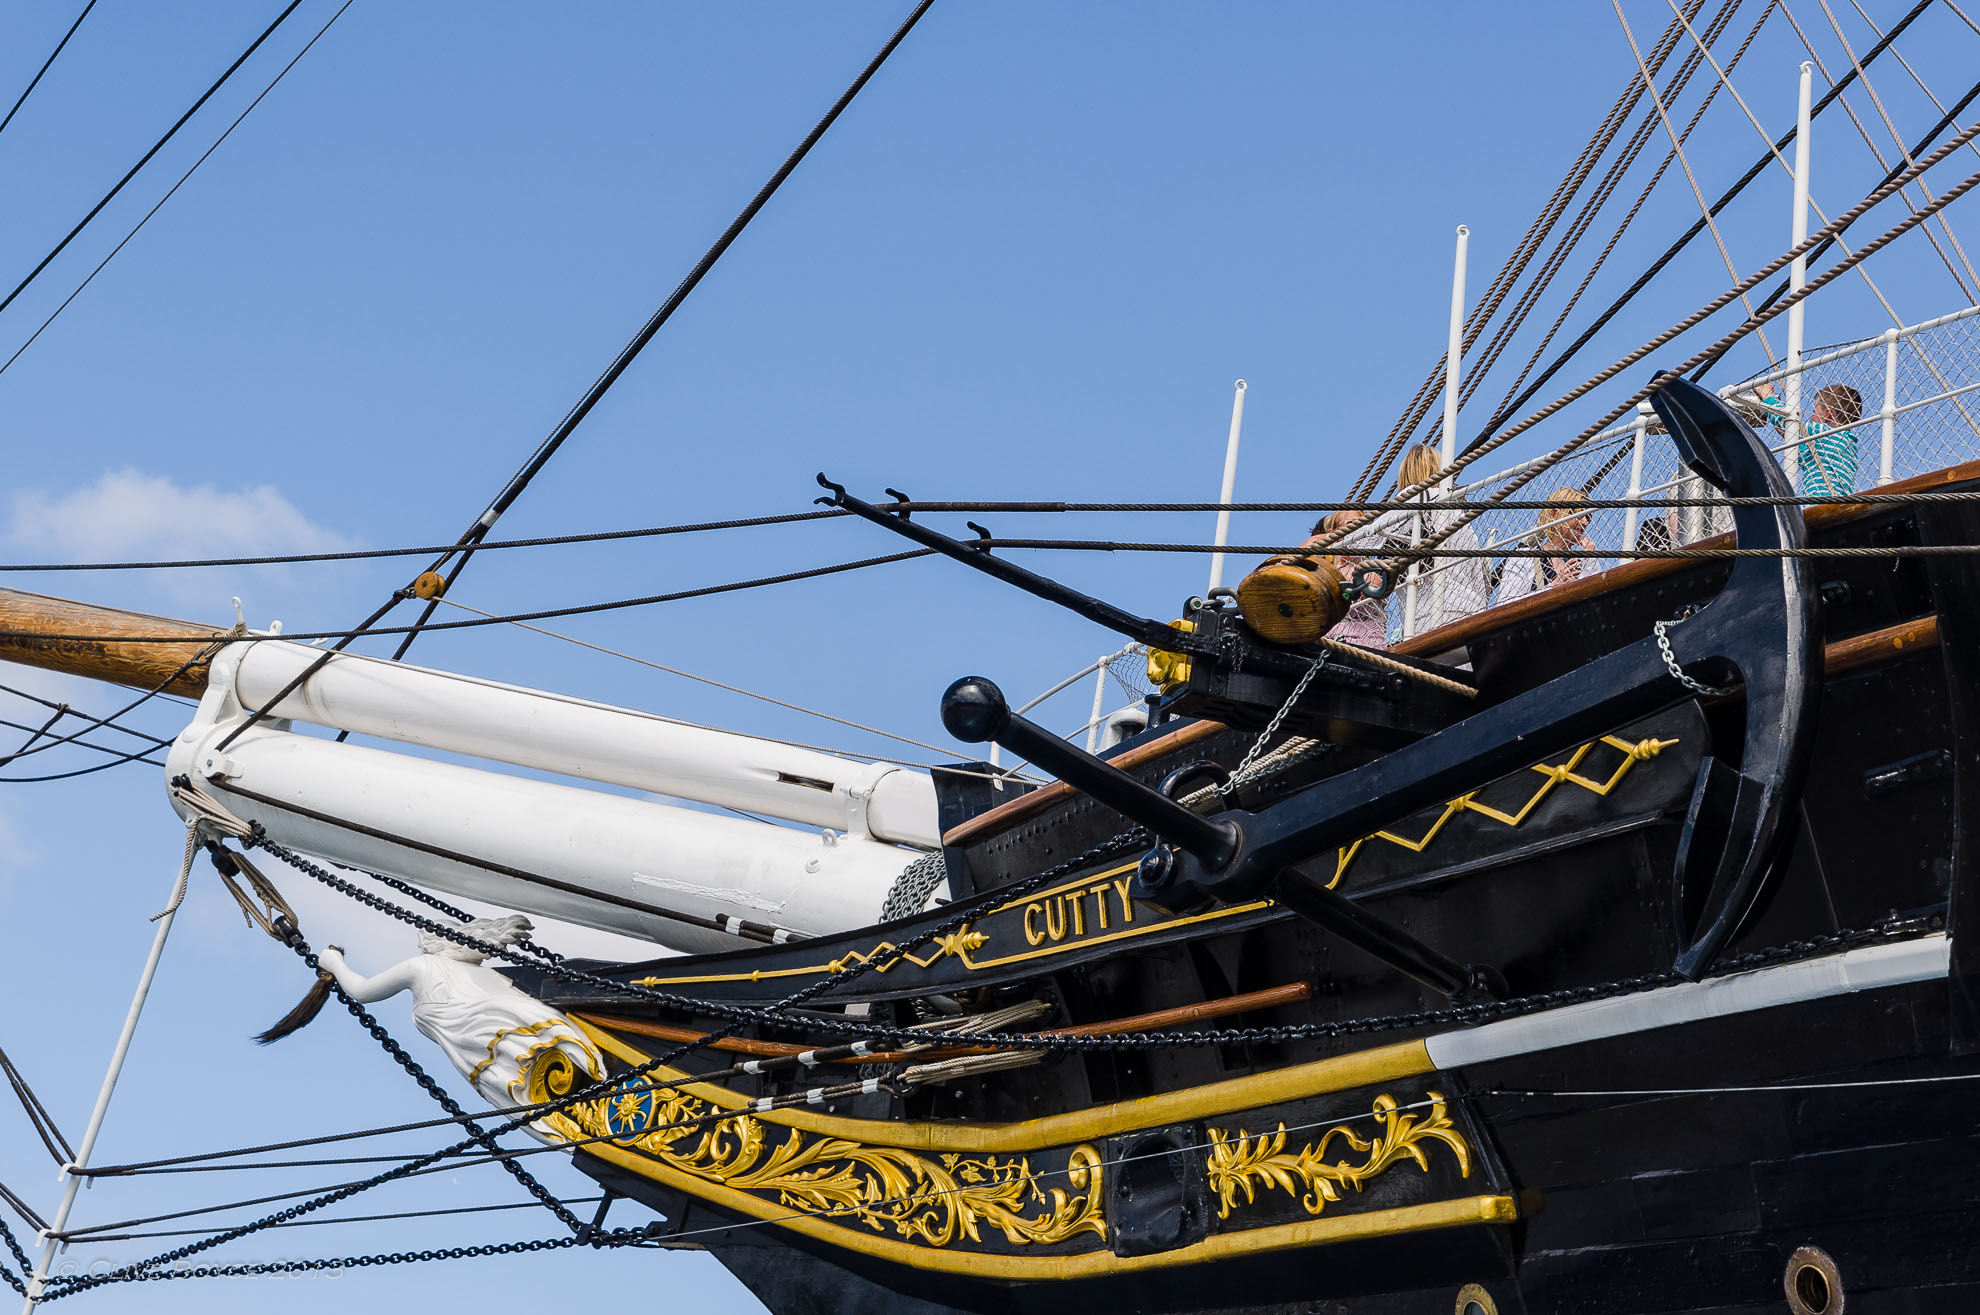 Bowsprint and figurehead of the Cutty Sark